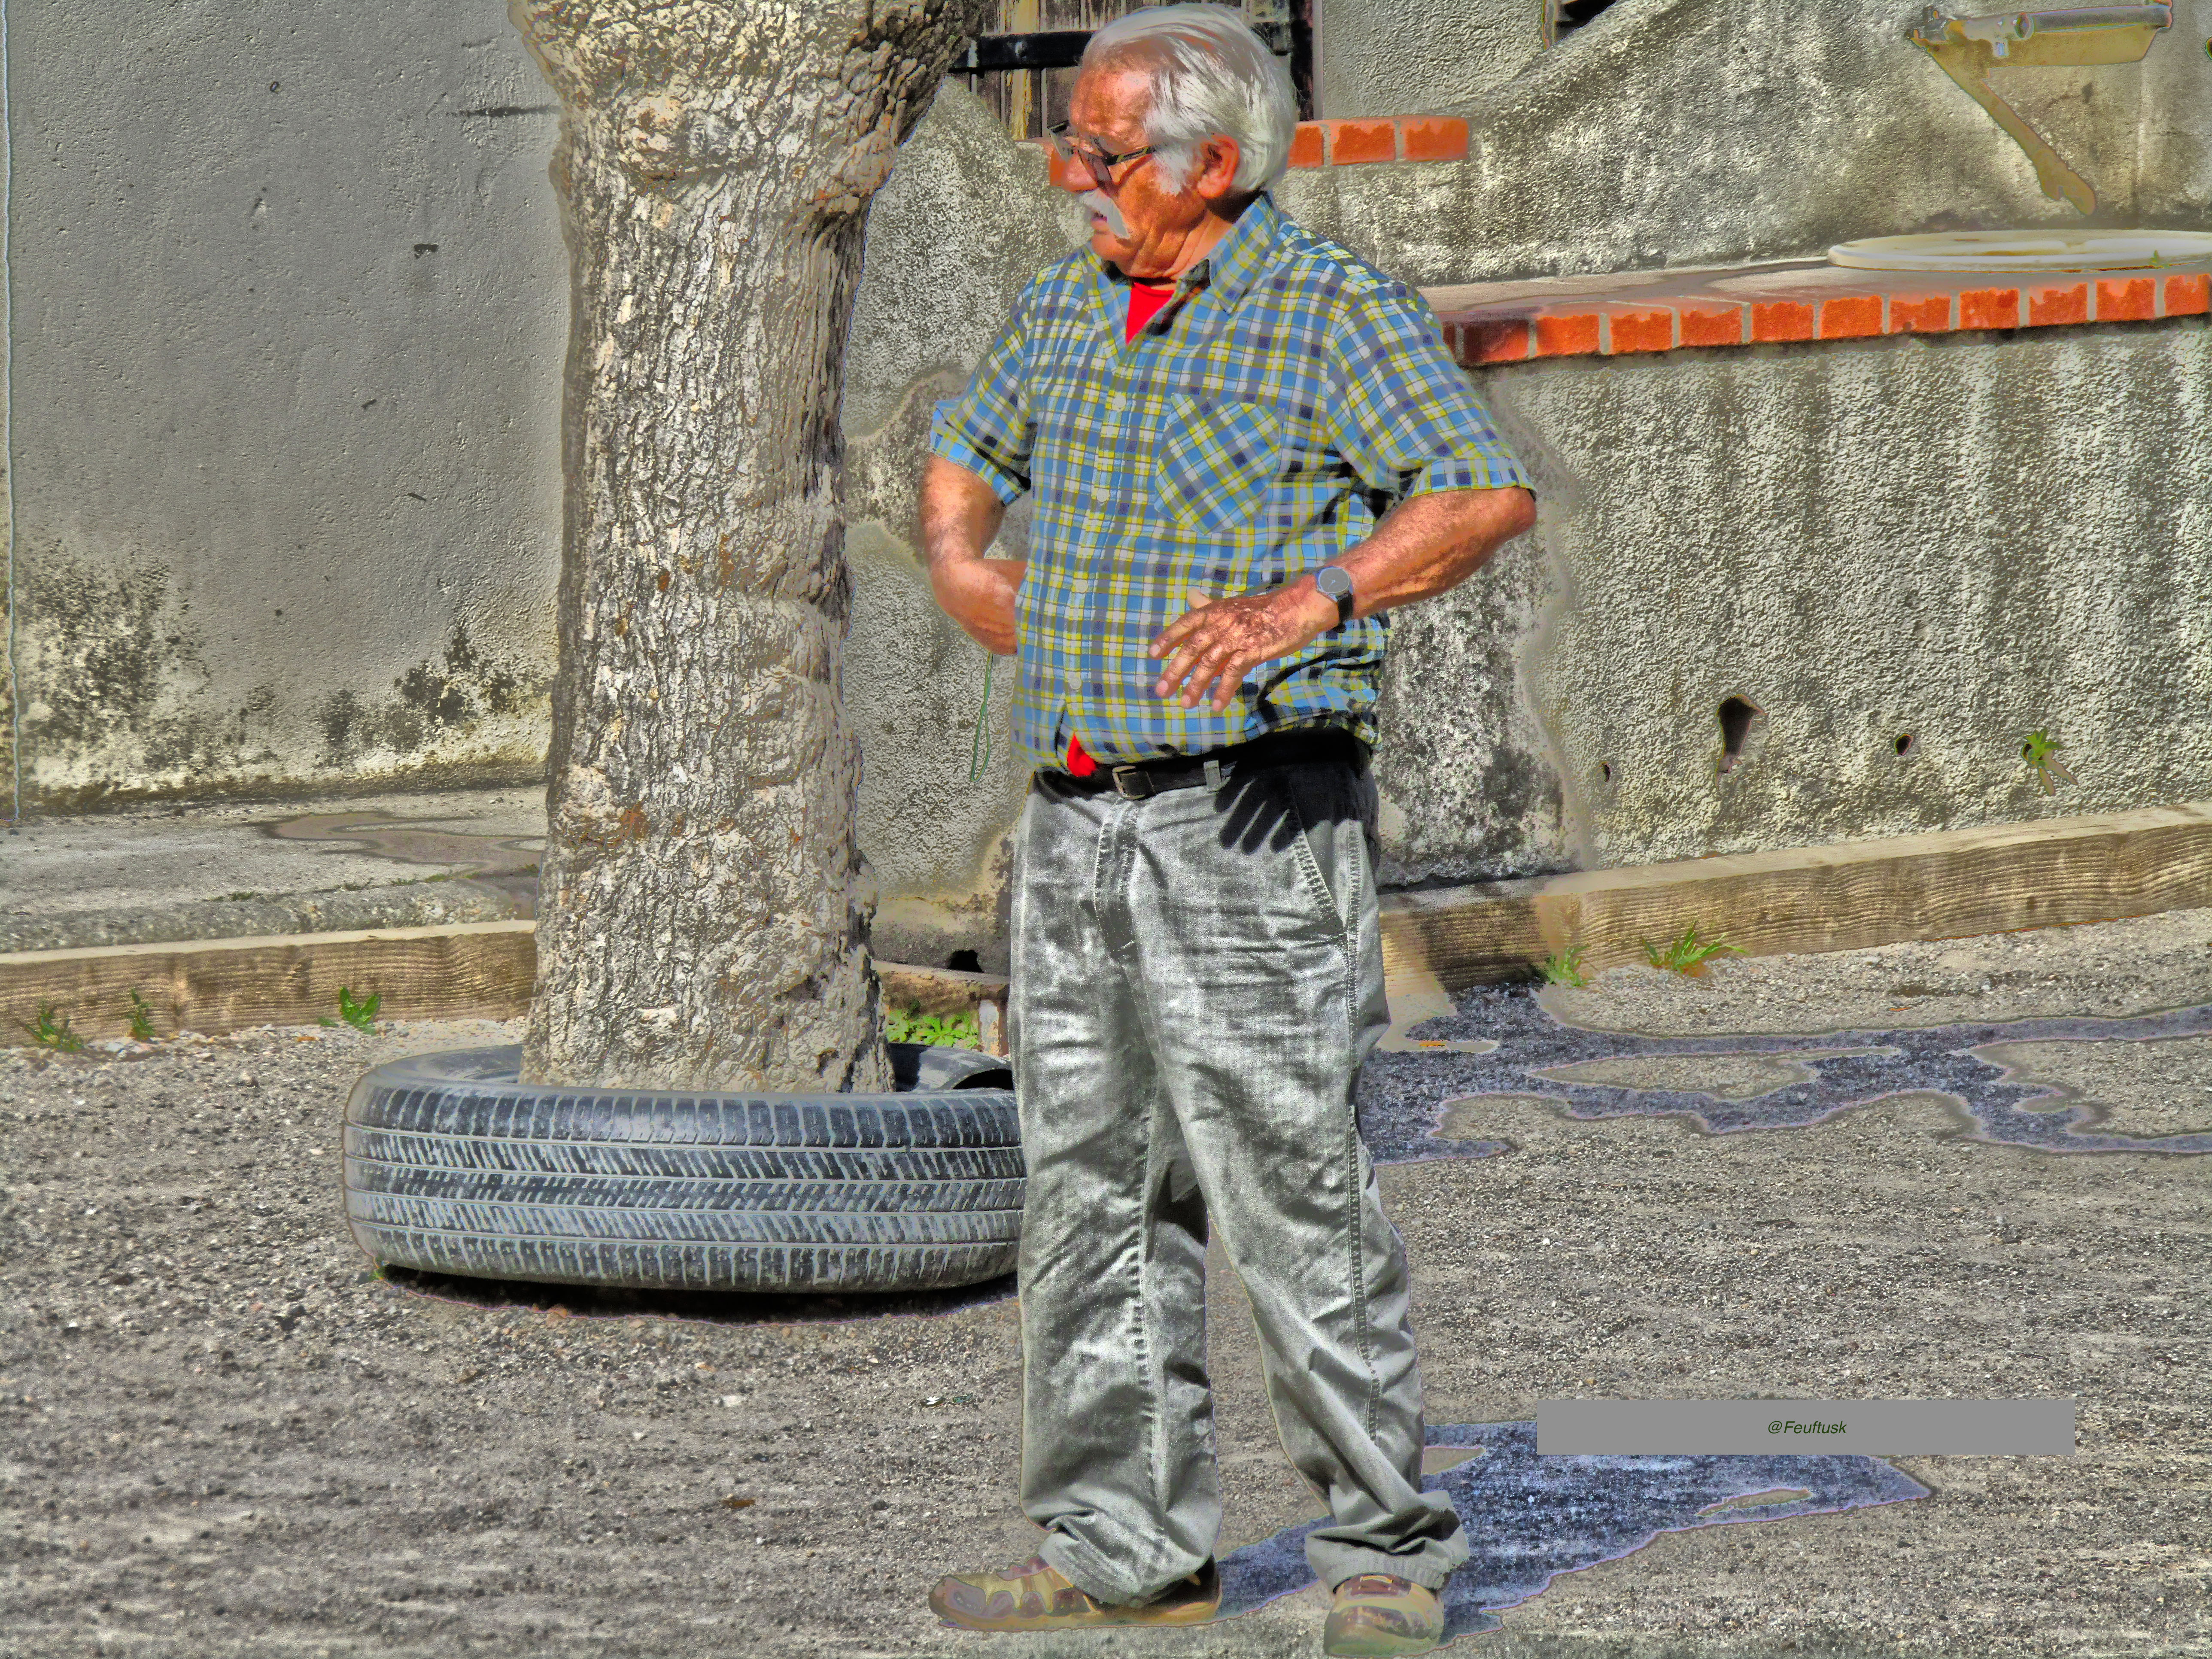 The pétanque player